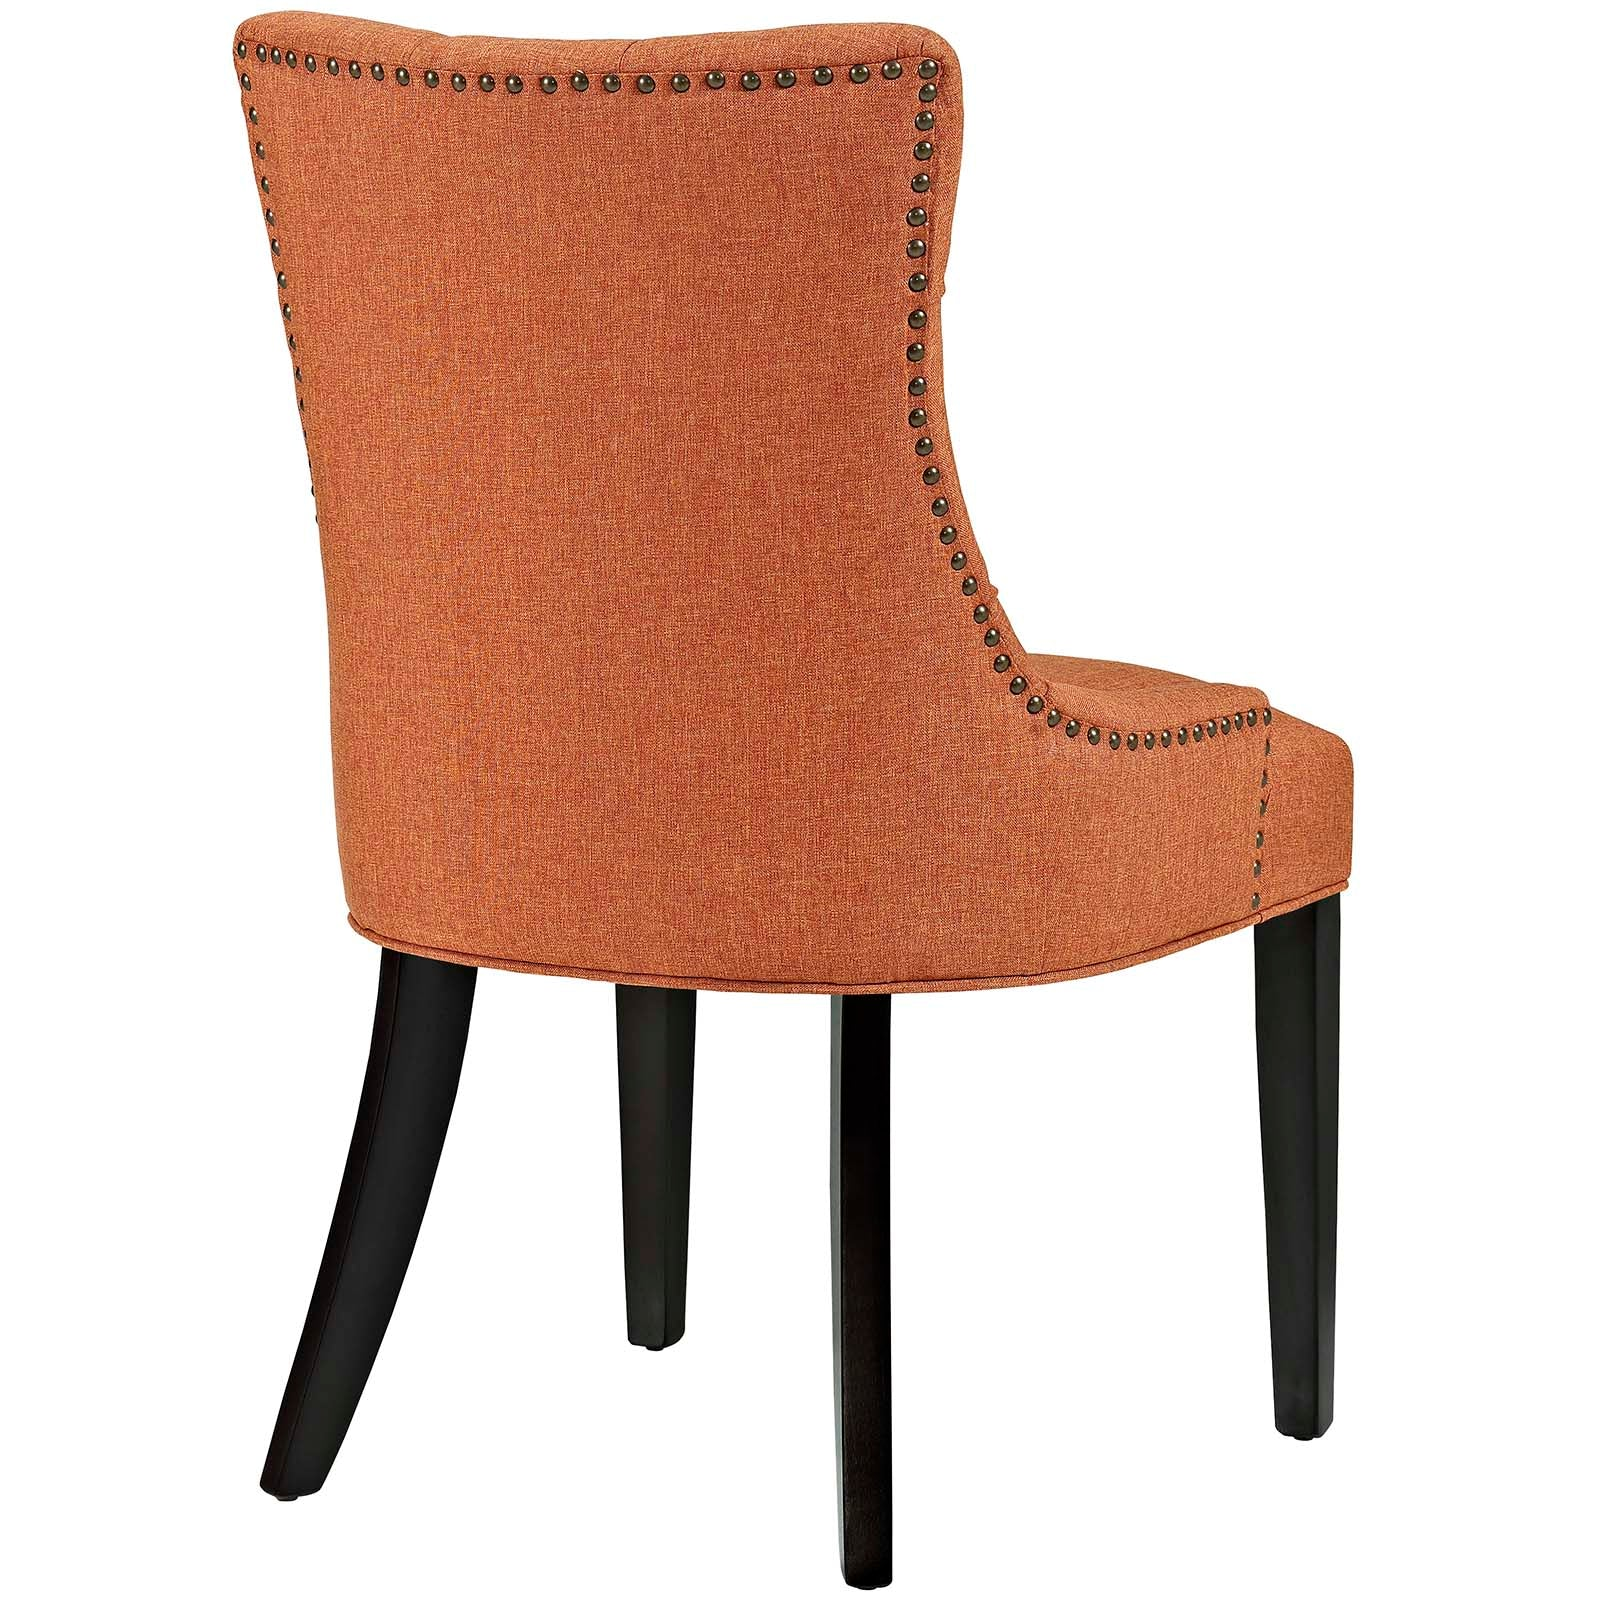 Modway Dining Chairs On Sale Eei 2223 Brn Regent Fabric